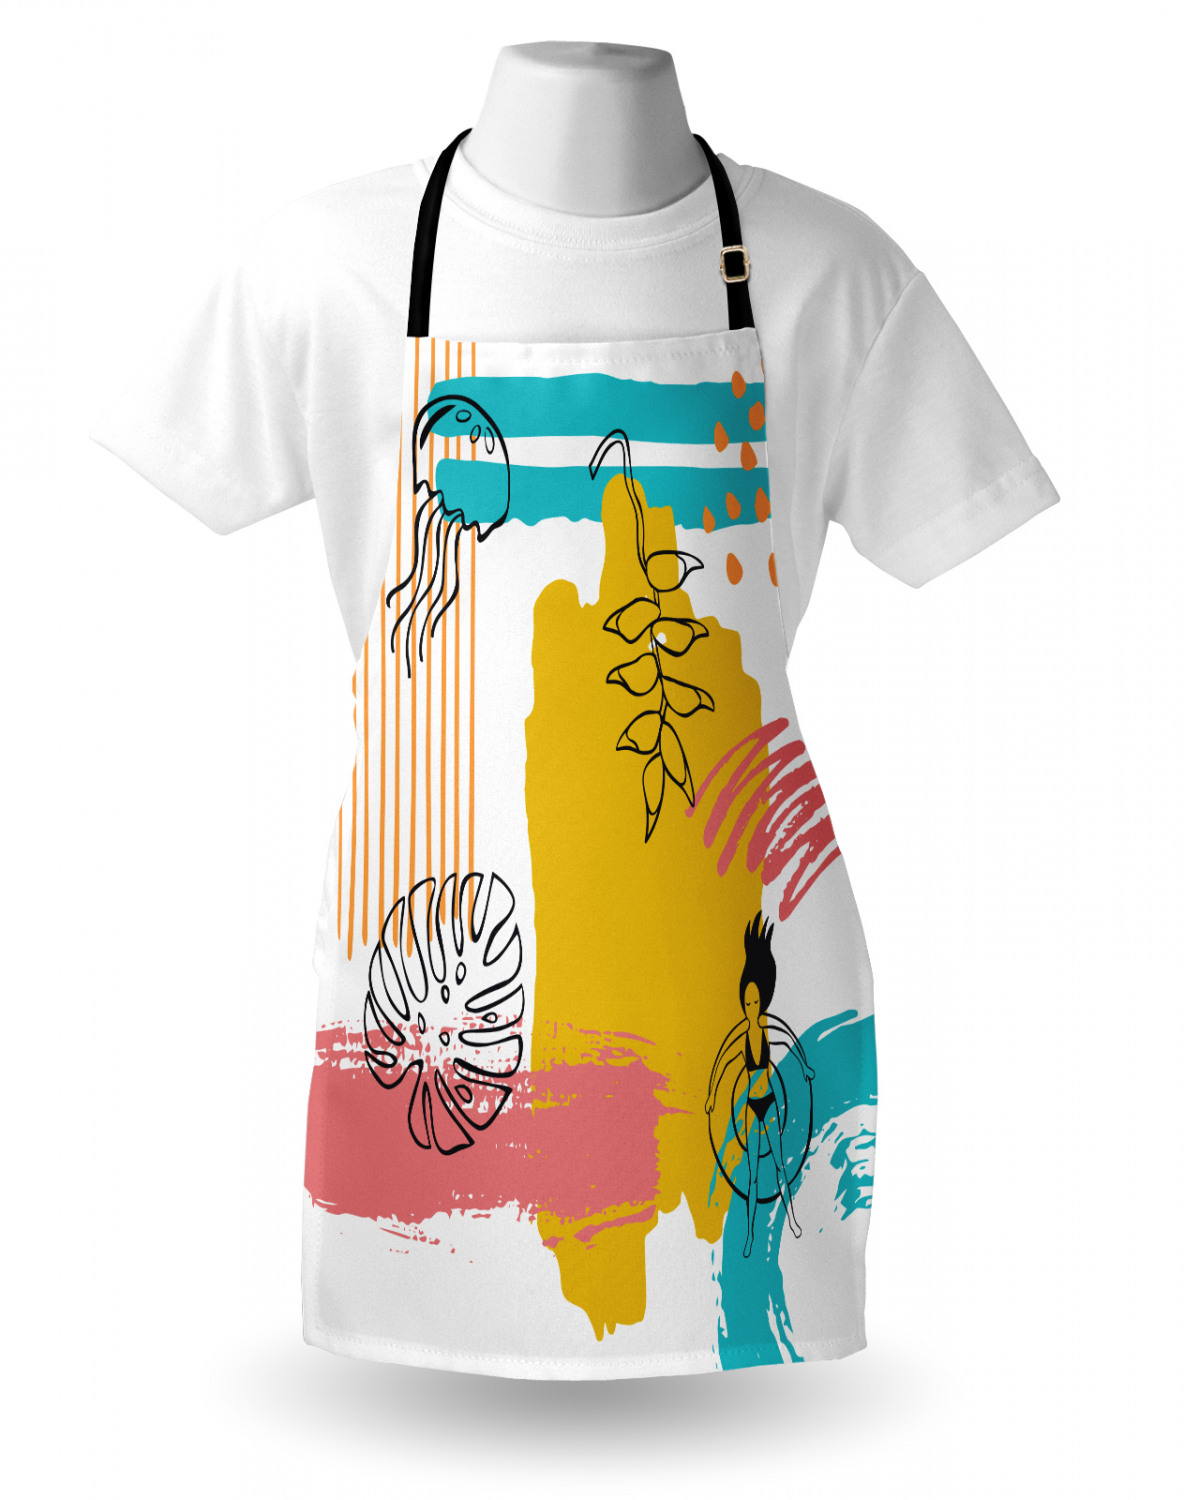 Details about  /Apron Adjustable Neck for Gardening and Cooking Unisex Standard Size Ambesonne